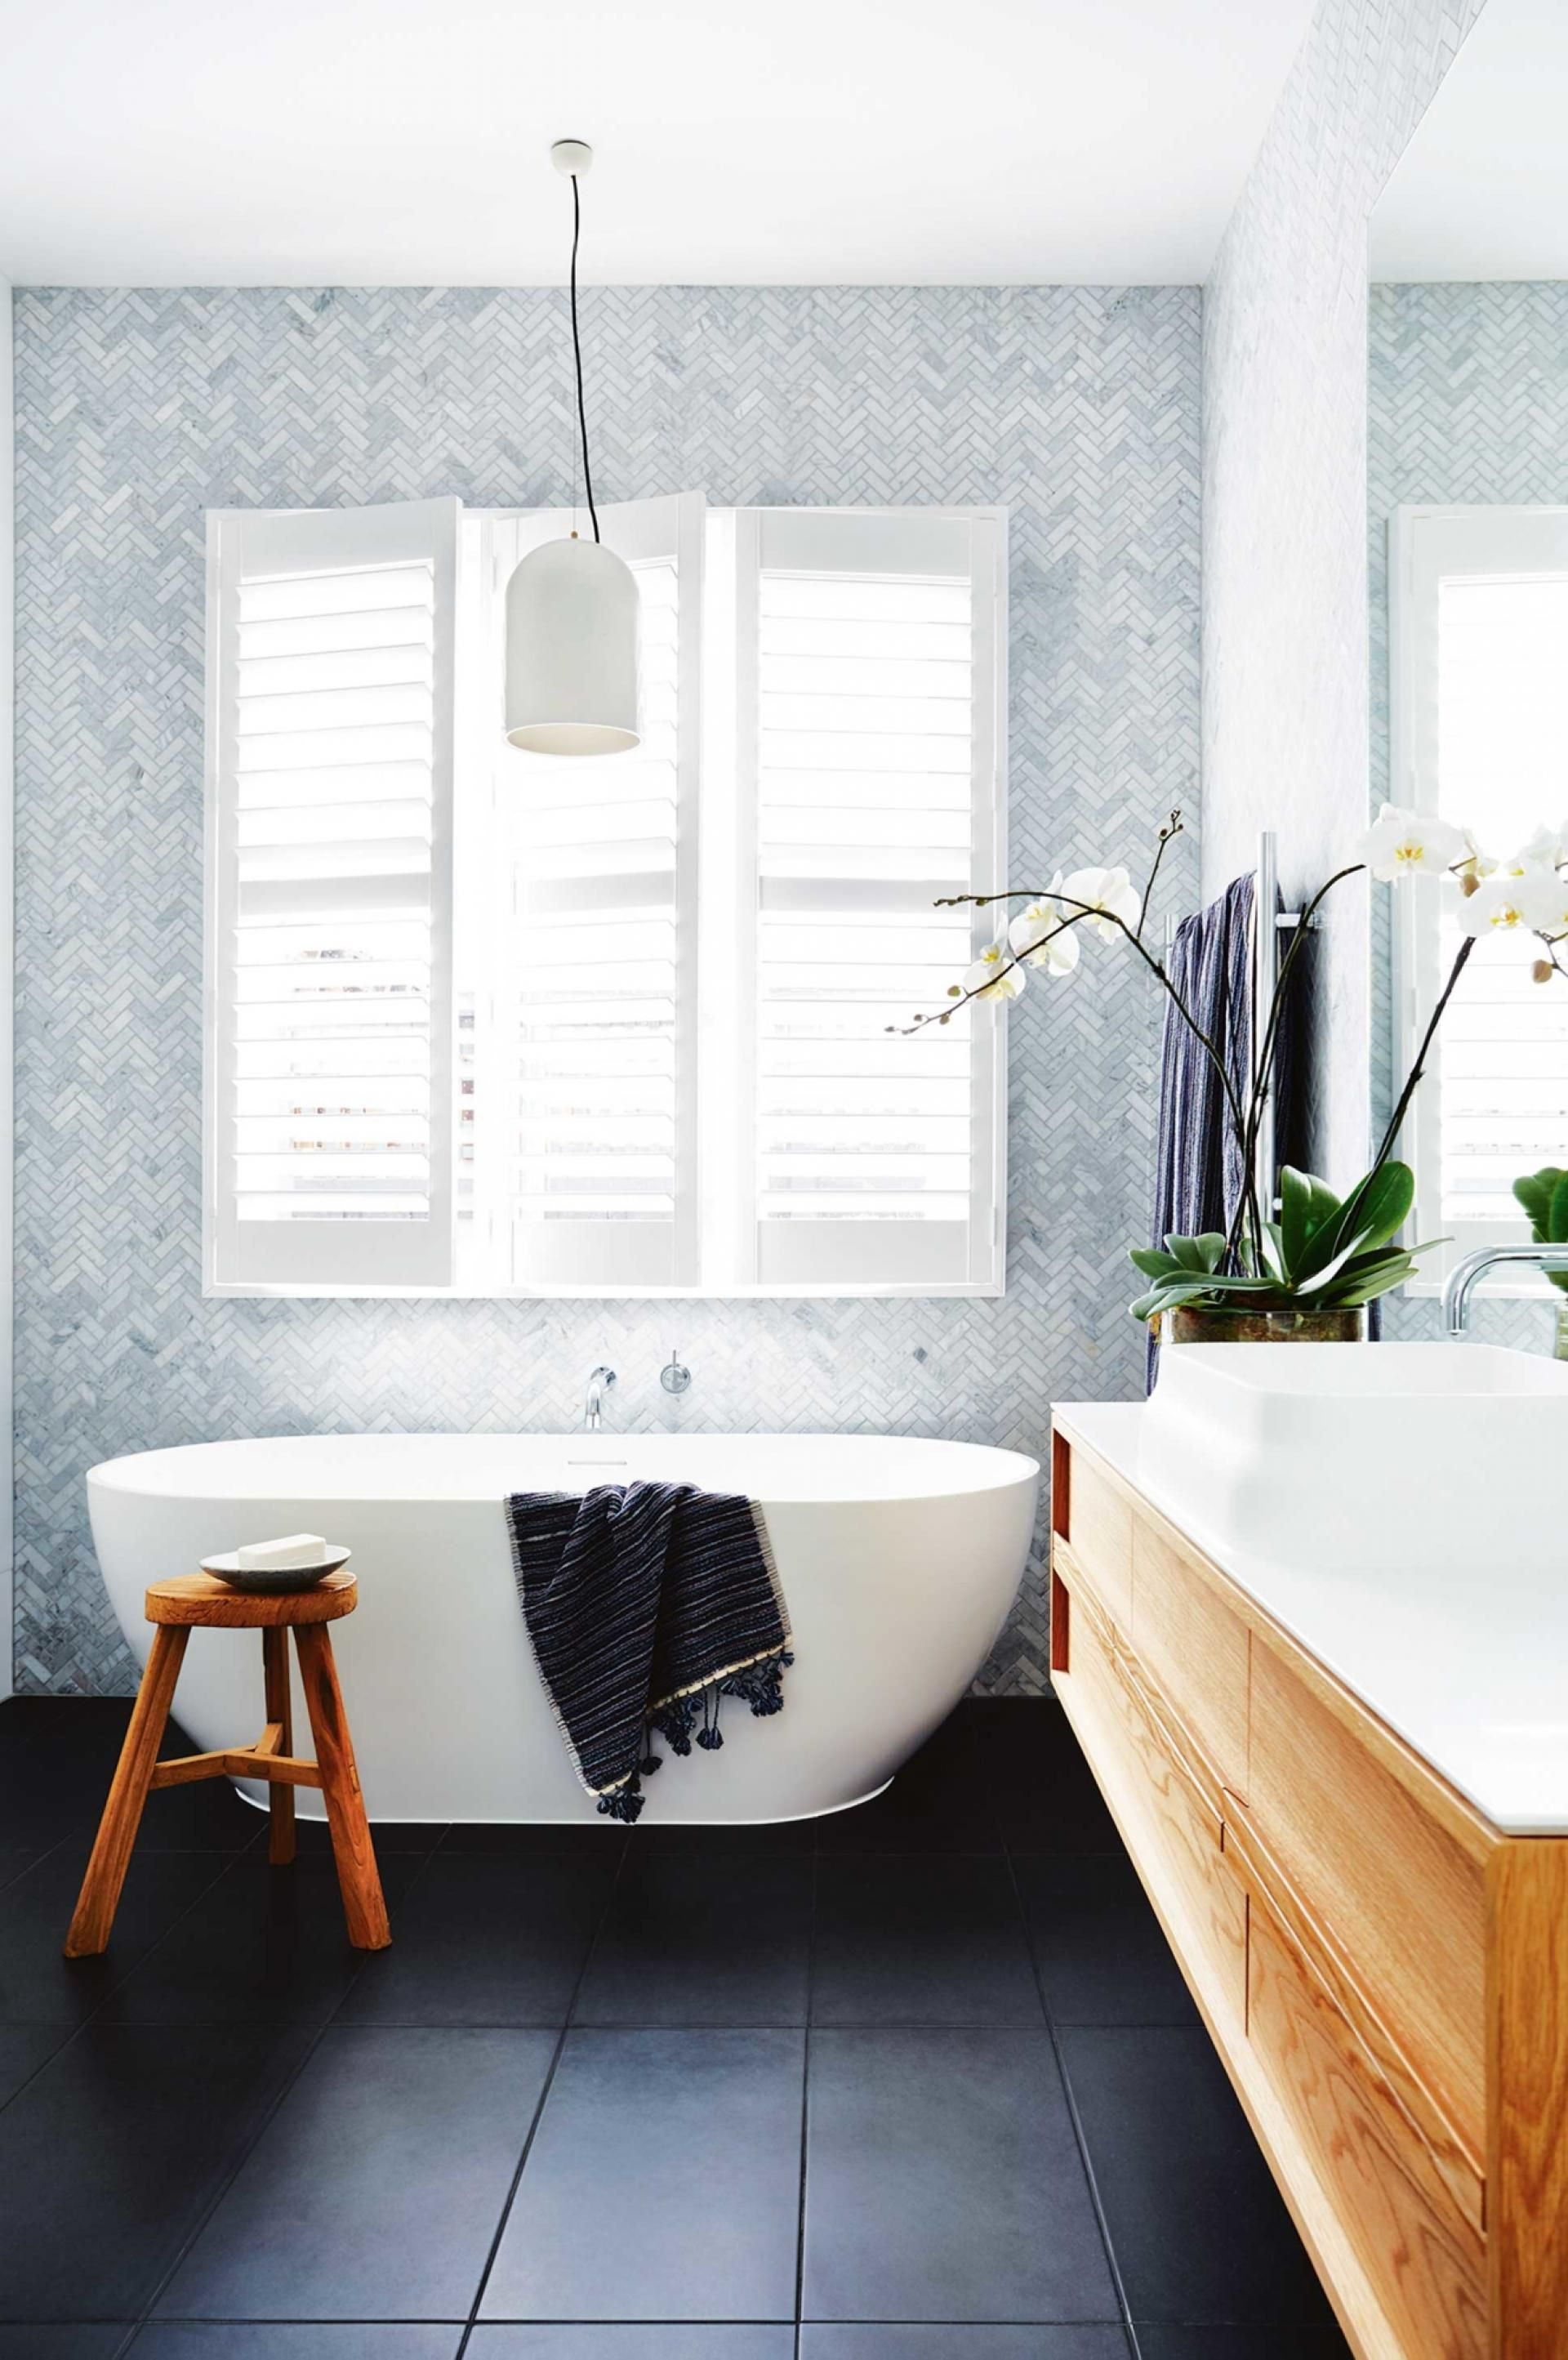 Brightbathroom ofi dec16 spaces and places pinterest timber herringbone tile seems to give it rhythm and pattern without being overbearing dailygadgetfo Gallery